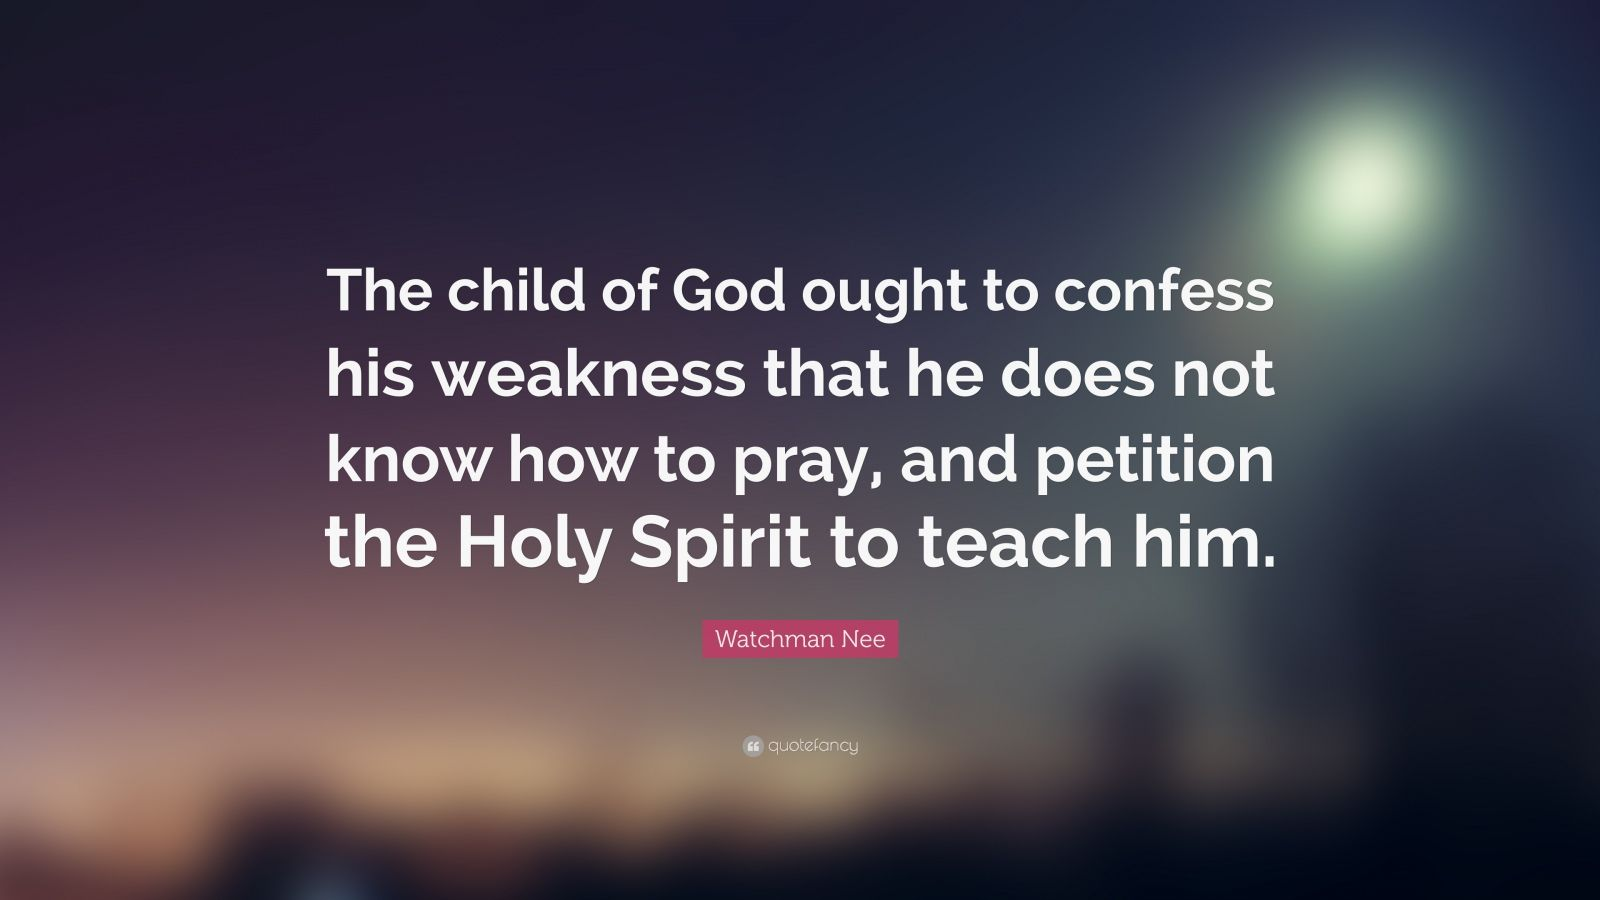 """Watchman Nee Quote: """"The child of God ought to confess his weakness that he does not know how to pray, and petition the Holy Spirit to teach him."""""""